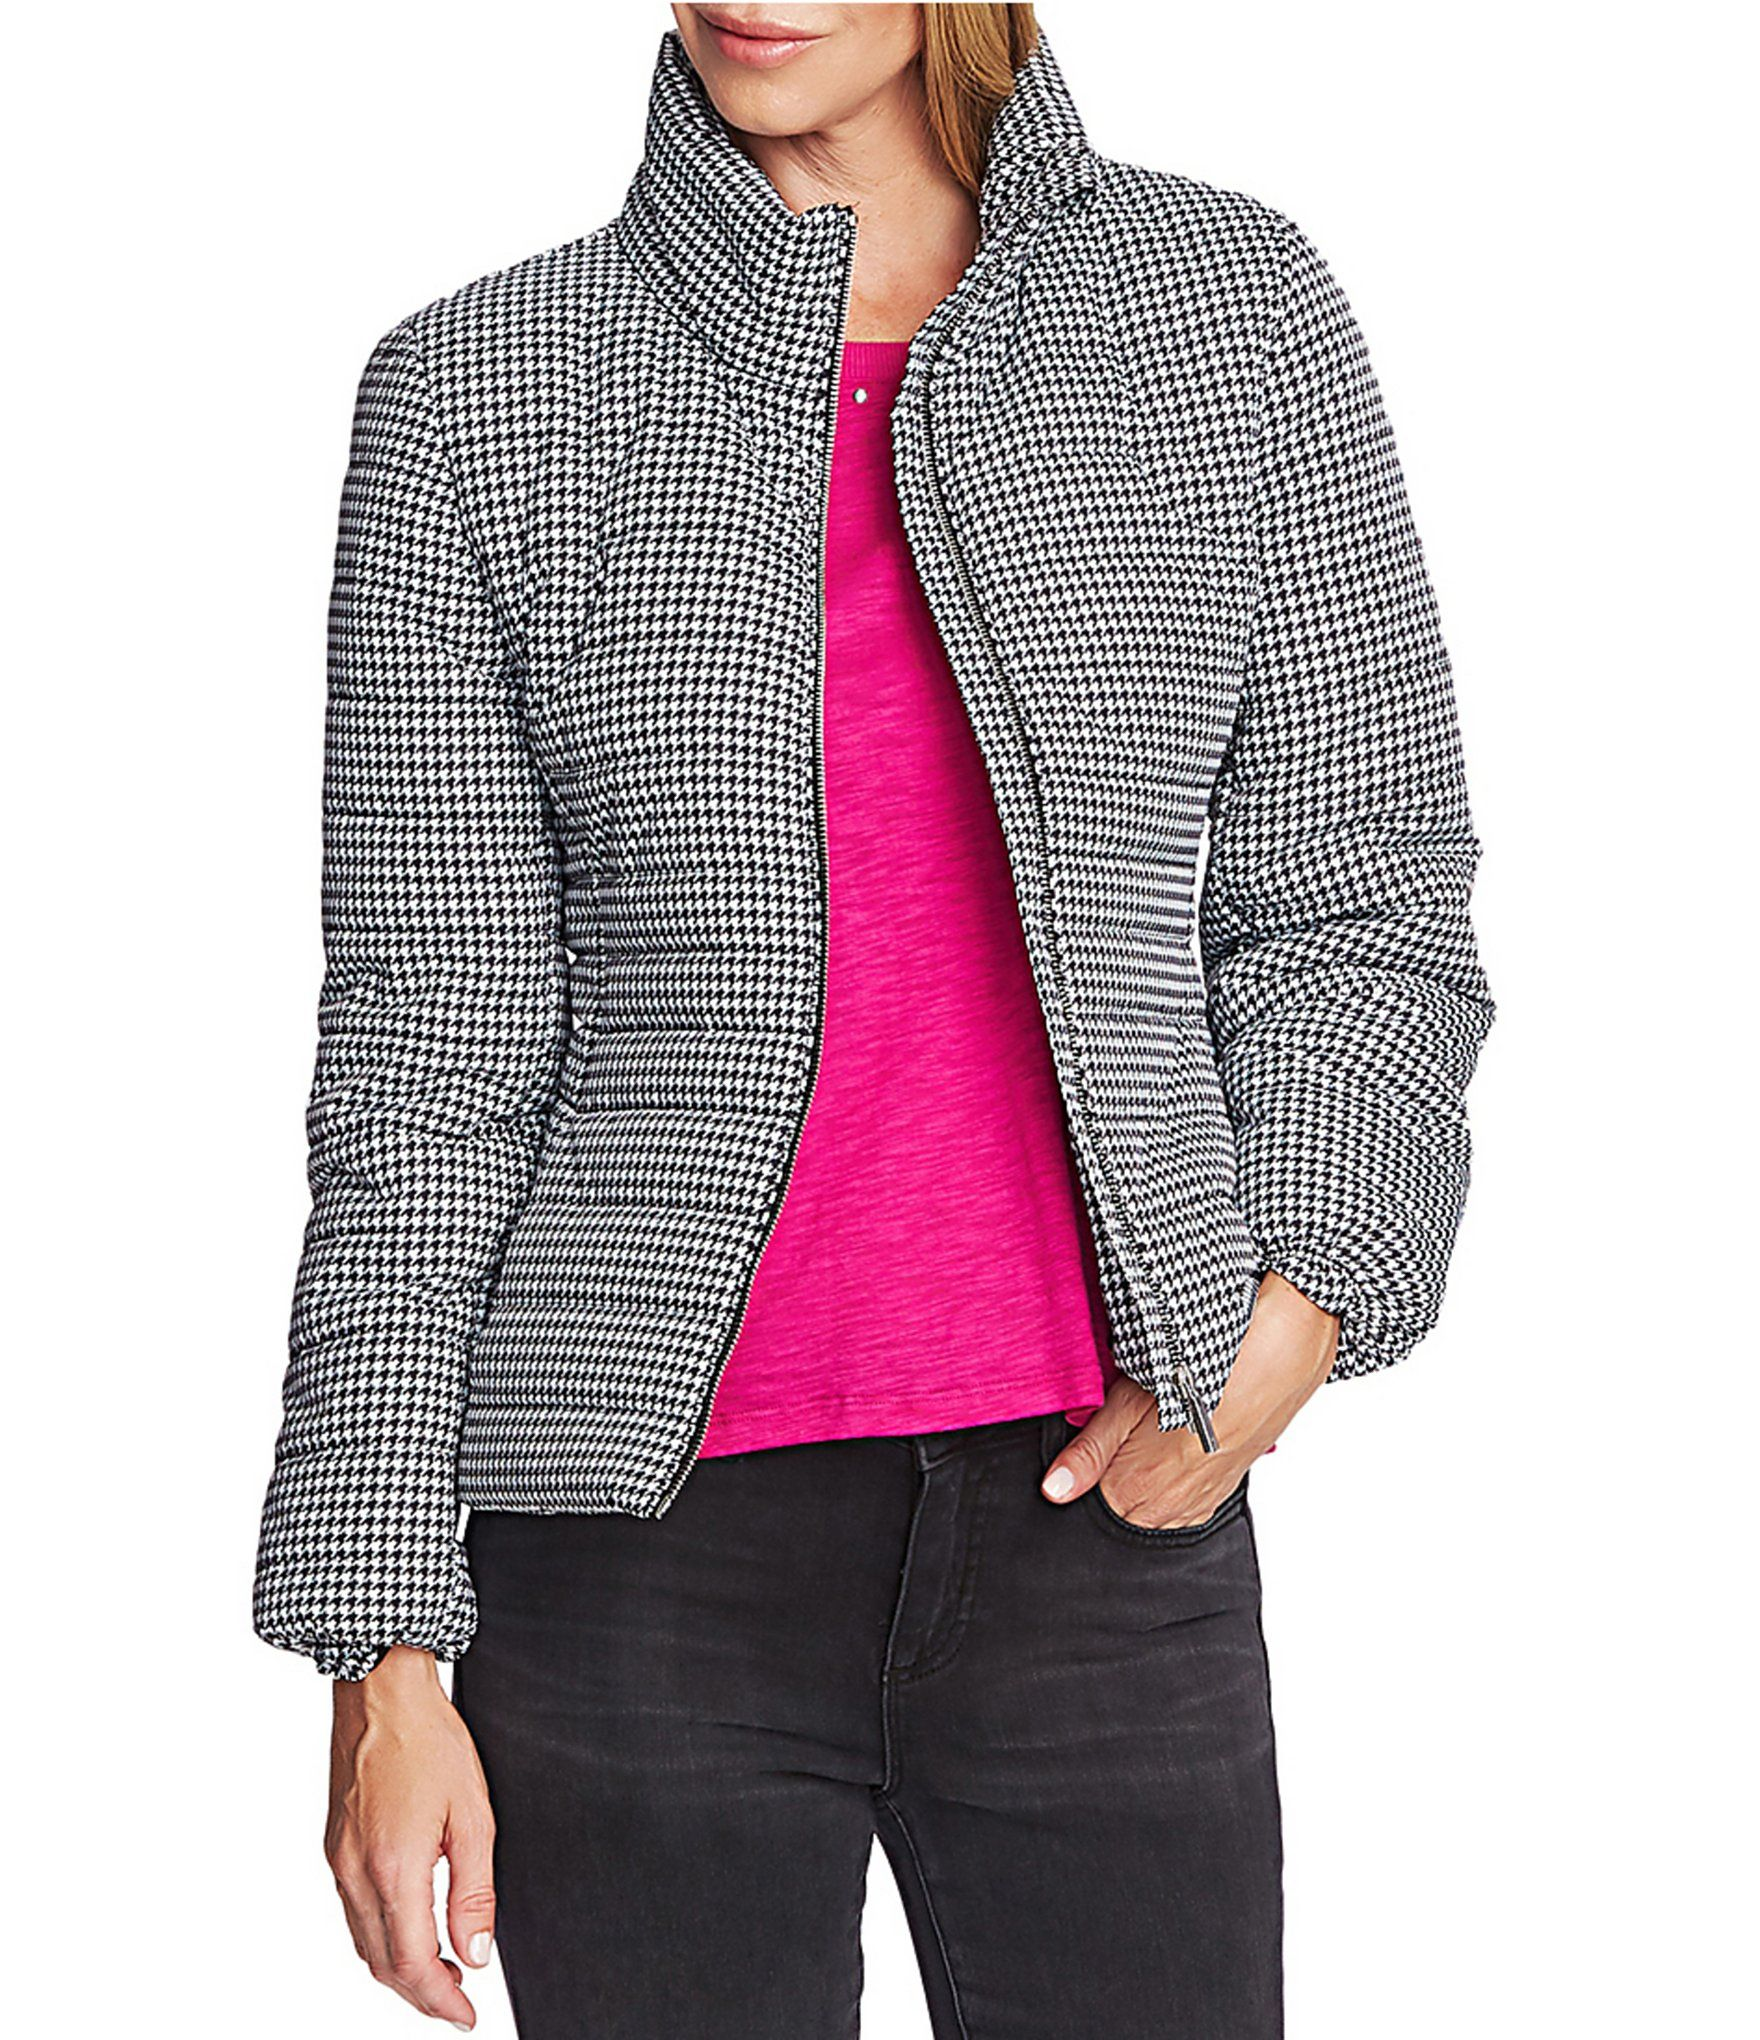 Vince Camuto Long Sleeve Houndstooth Puffer Jacket - Rich Black M 2